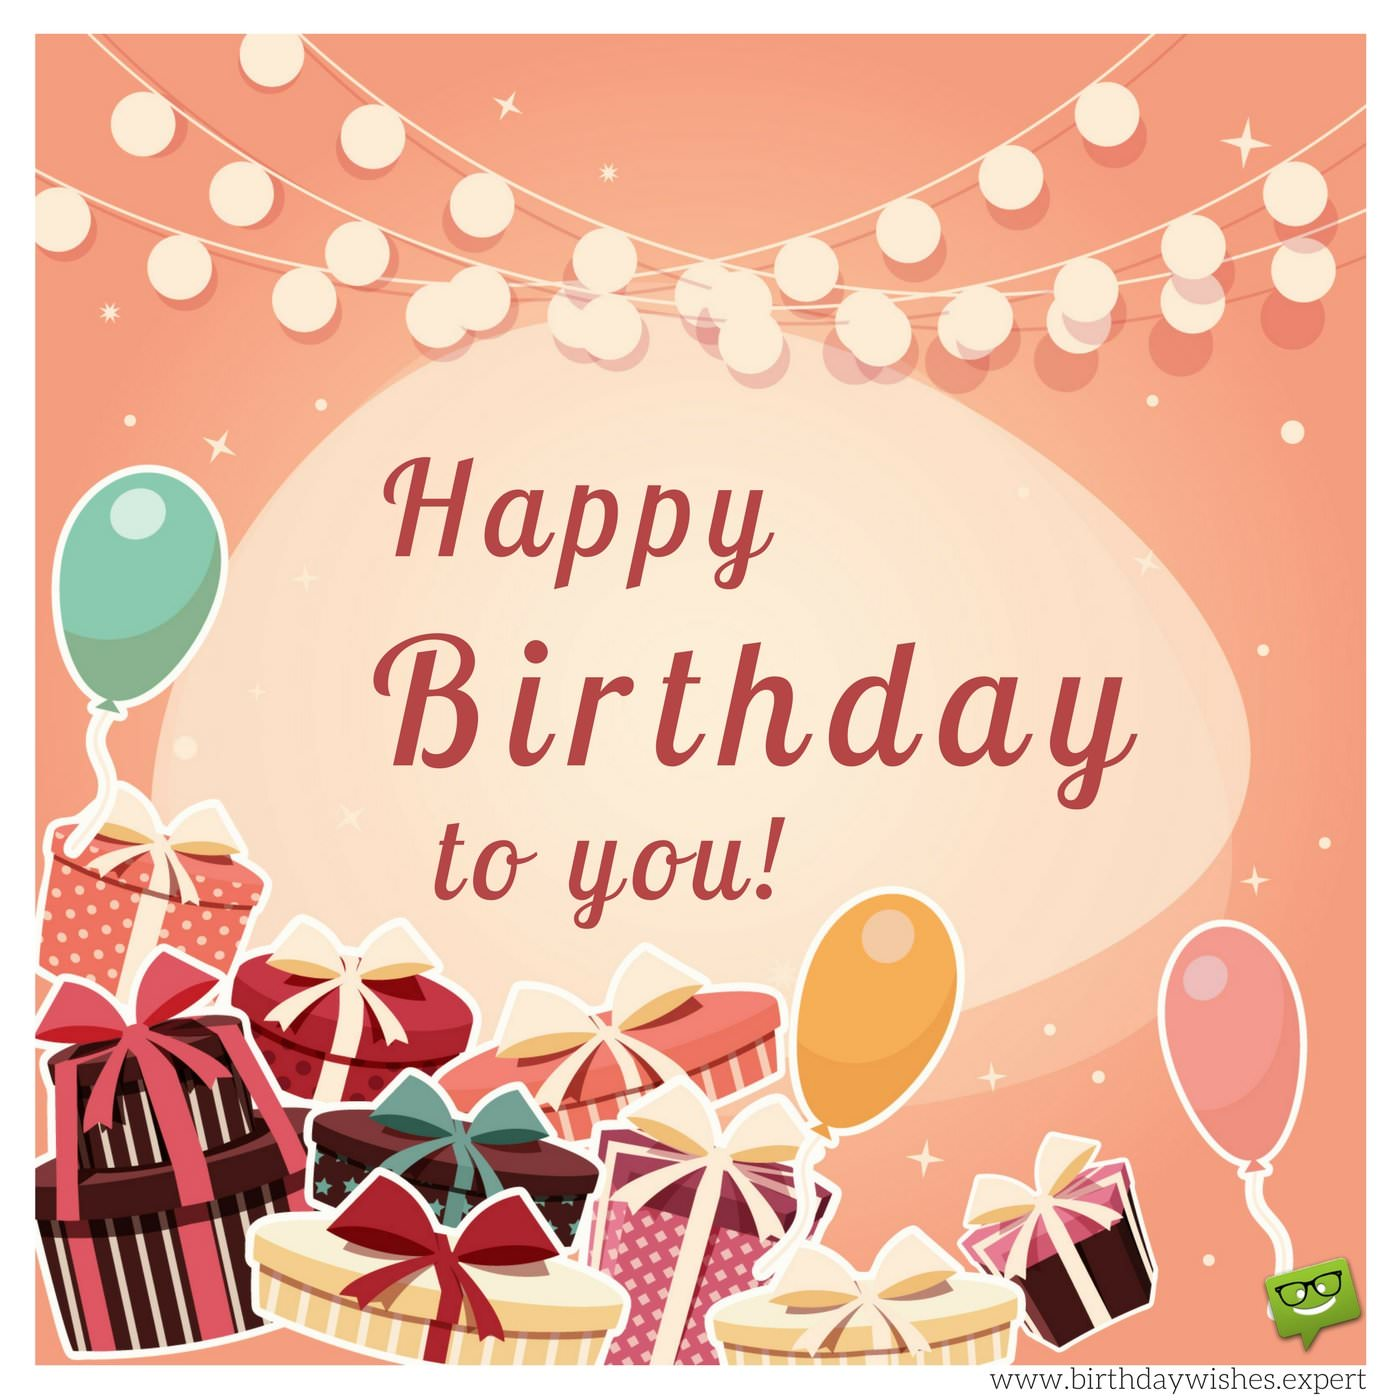 Happy Birthday Wishes For Your Facebook Friends Happy Birthday Wishes To You Like